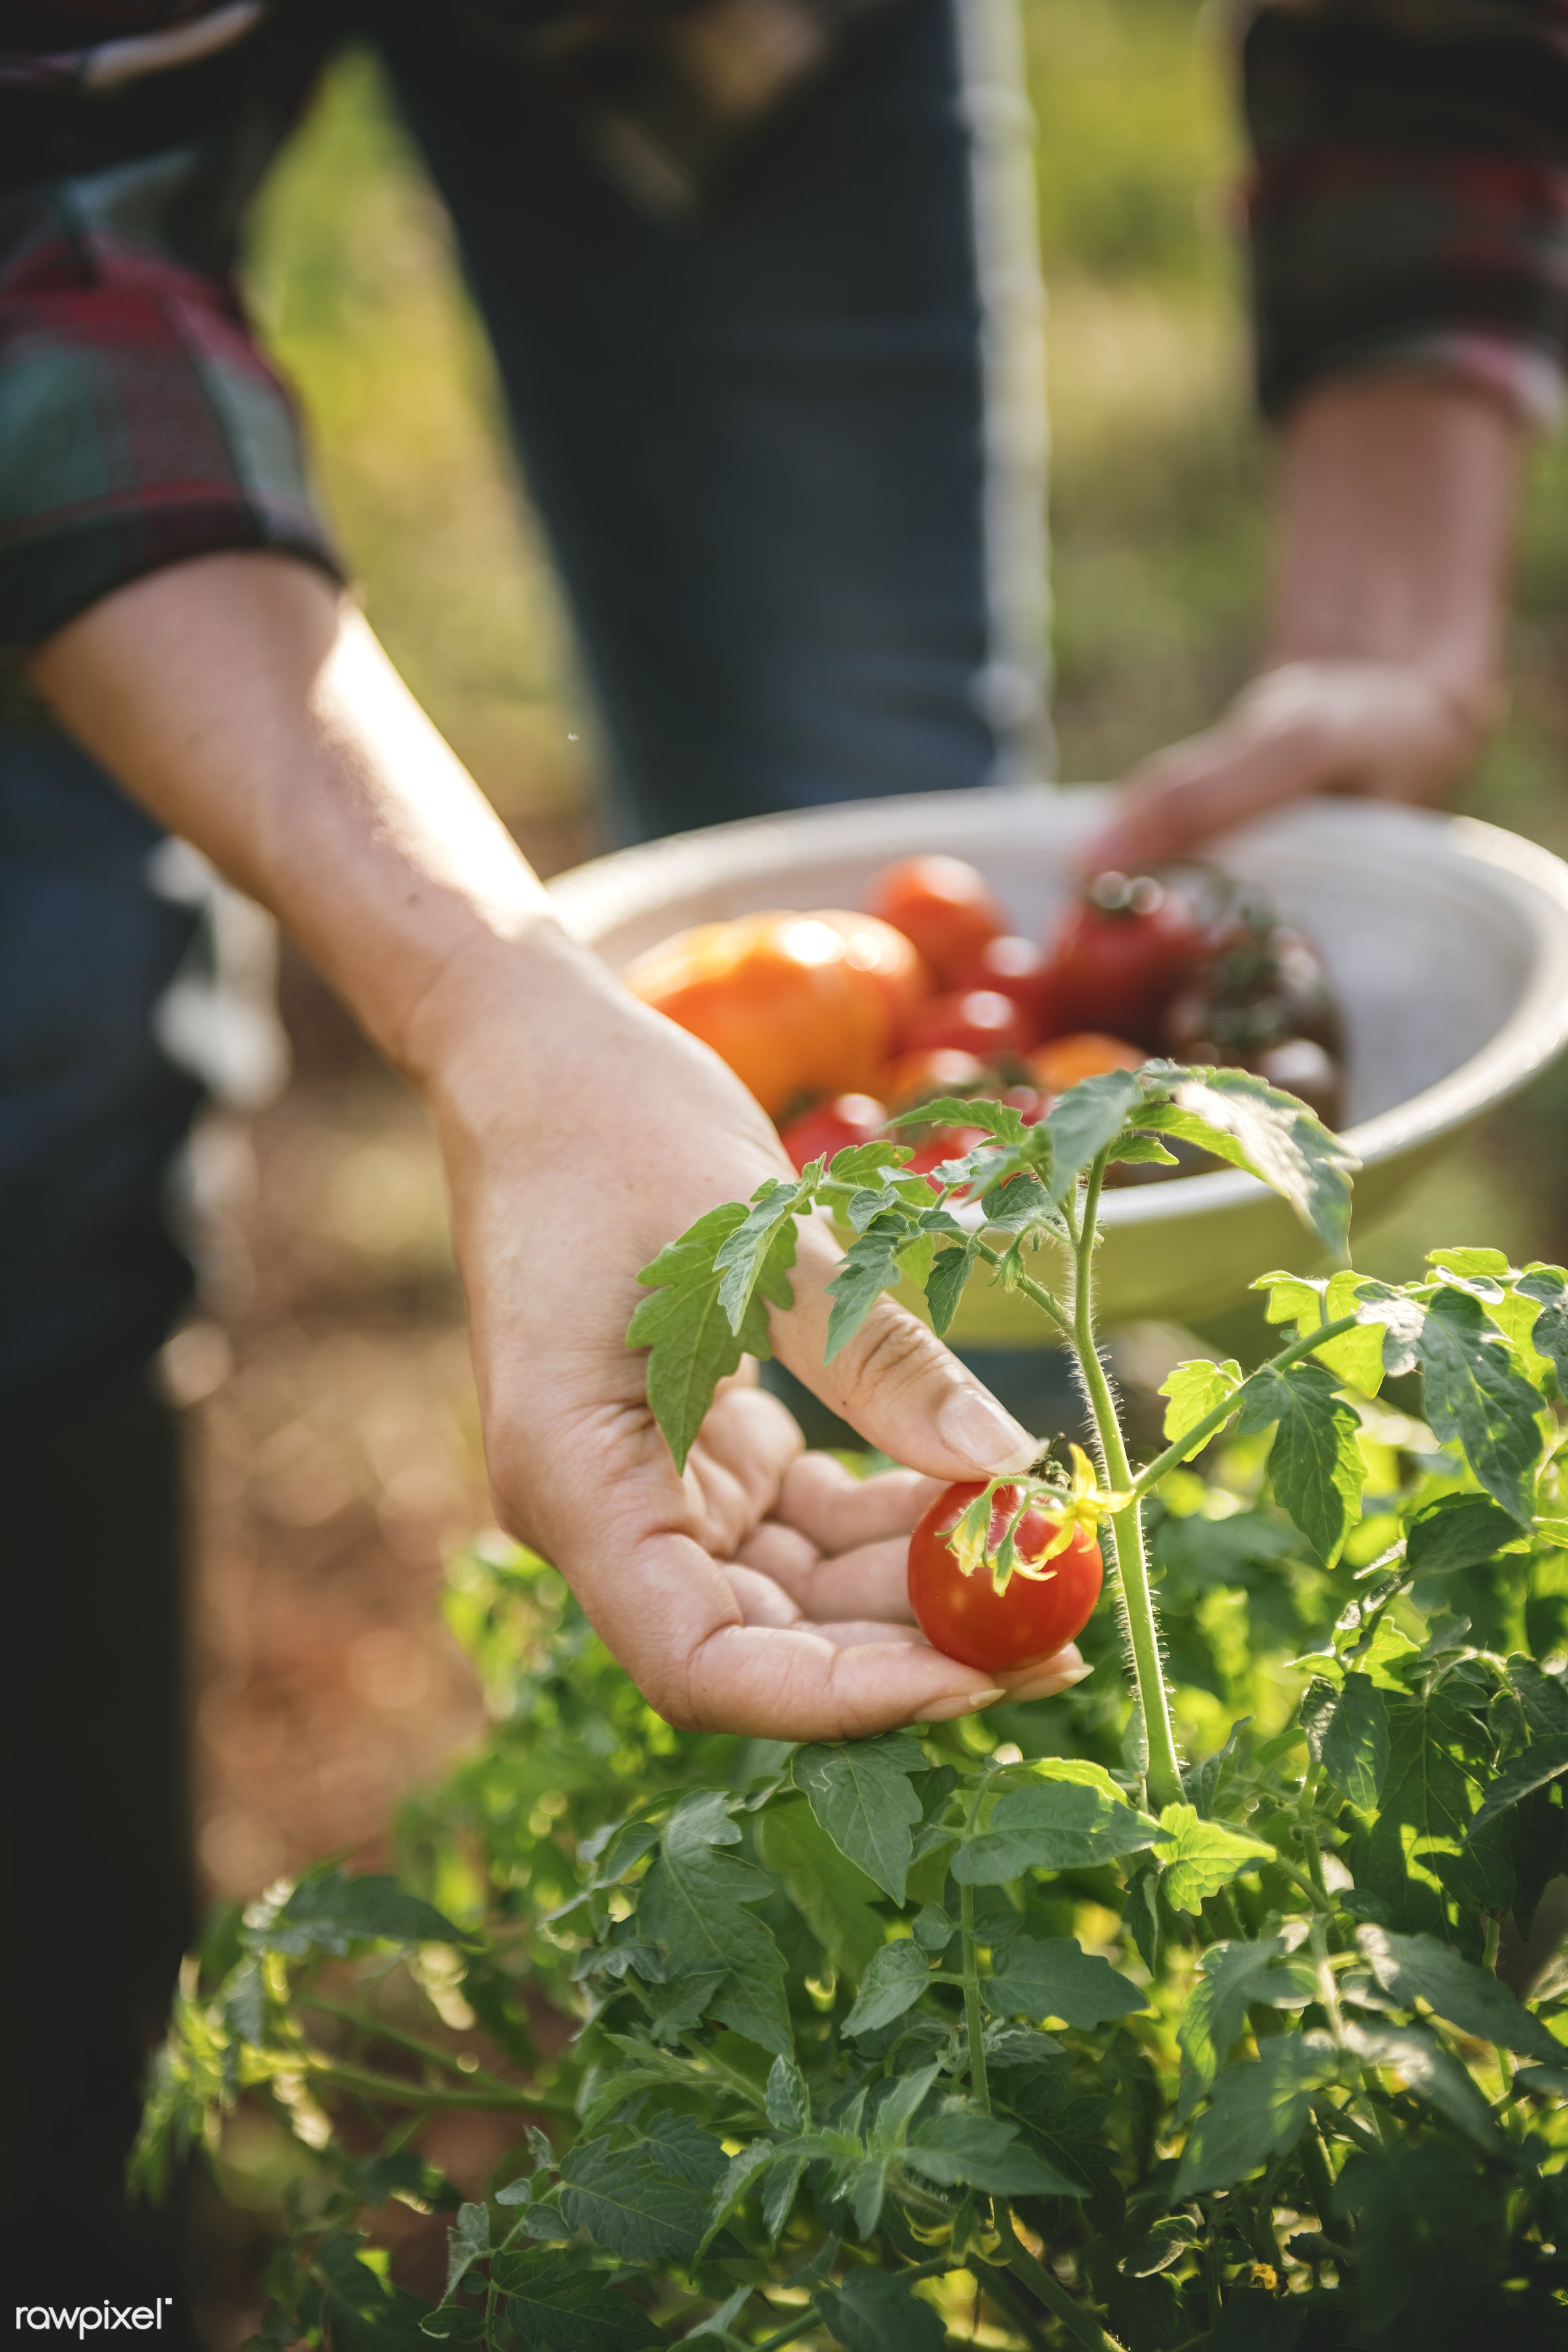 Picking fresh tomatoes - agriculture, background, cherry tomato, collect, crop, diet, edible, farm, farmer, farming, food,...